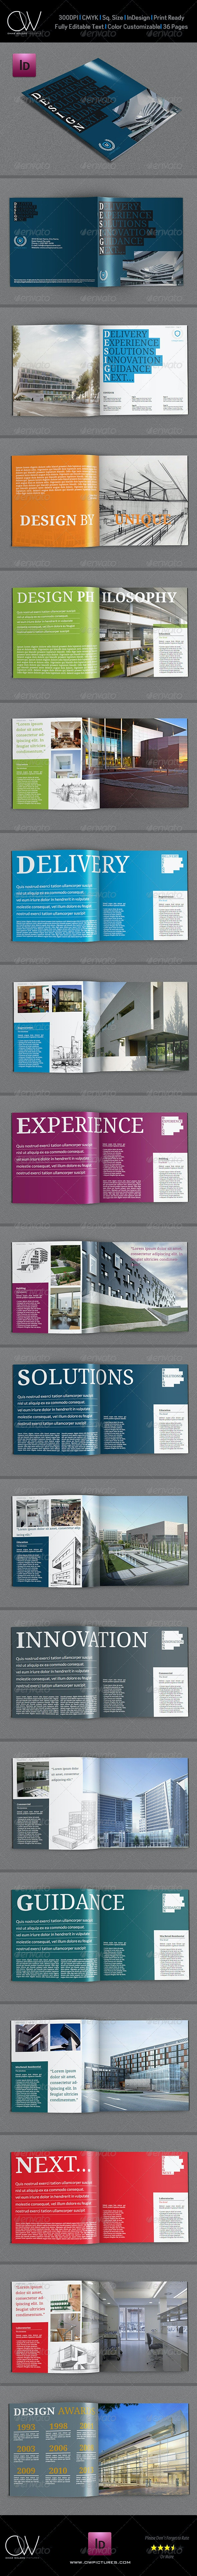 Design Company Brochure Template - 36 Pages - Corporate Brochures